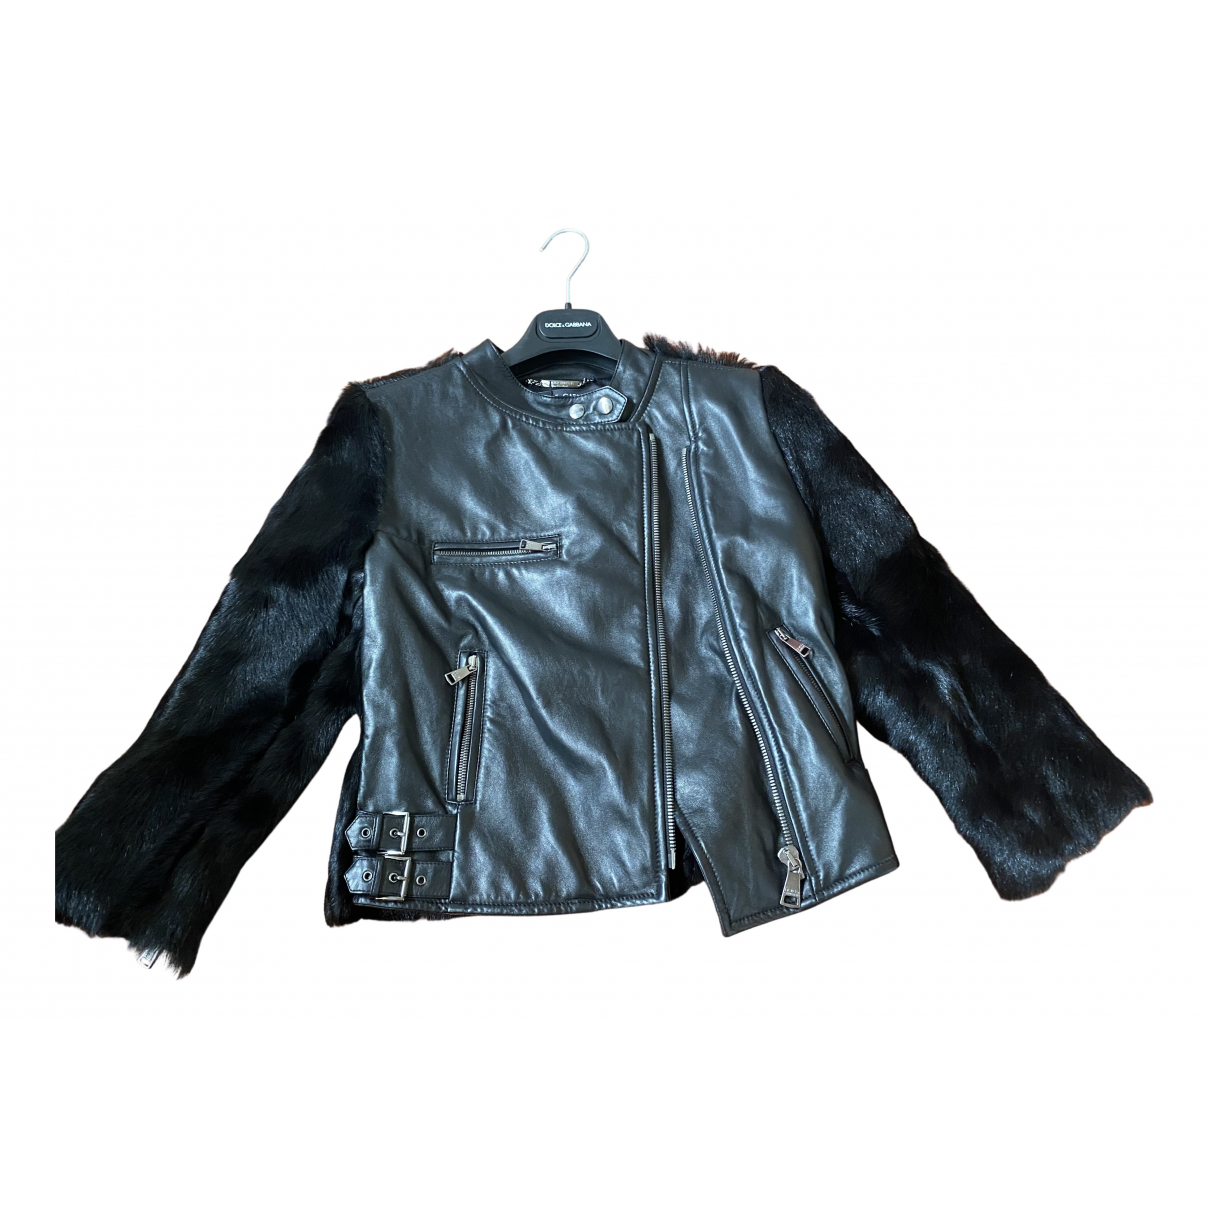 Dolce & Gabbana N Black Leather Leather jacket for Women 38 IT